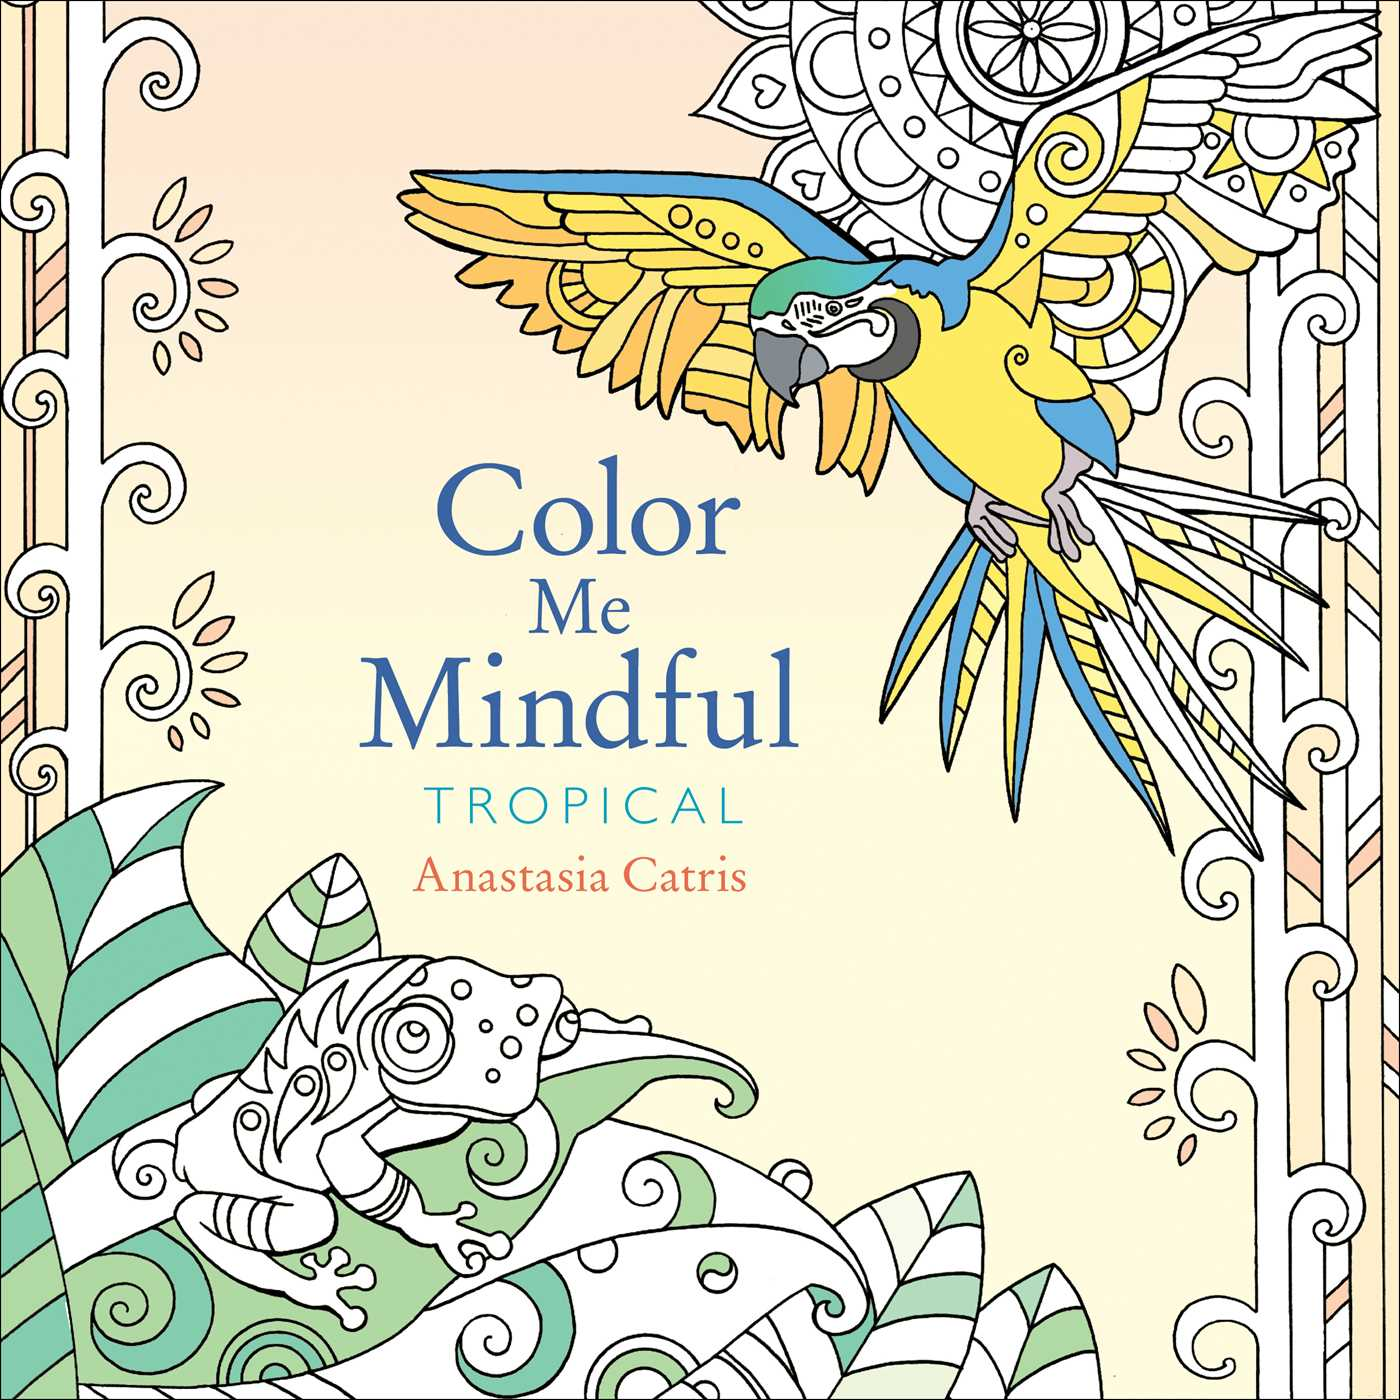 Color me mindful tropical 9781501130892 hr